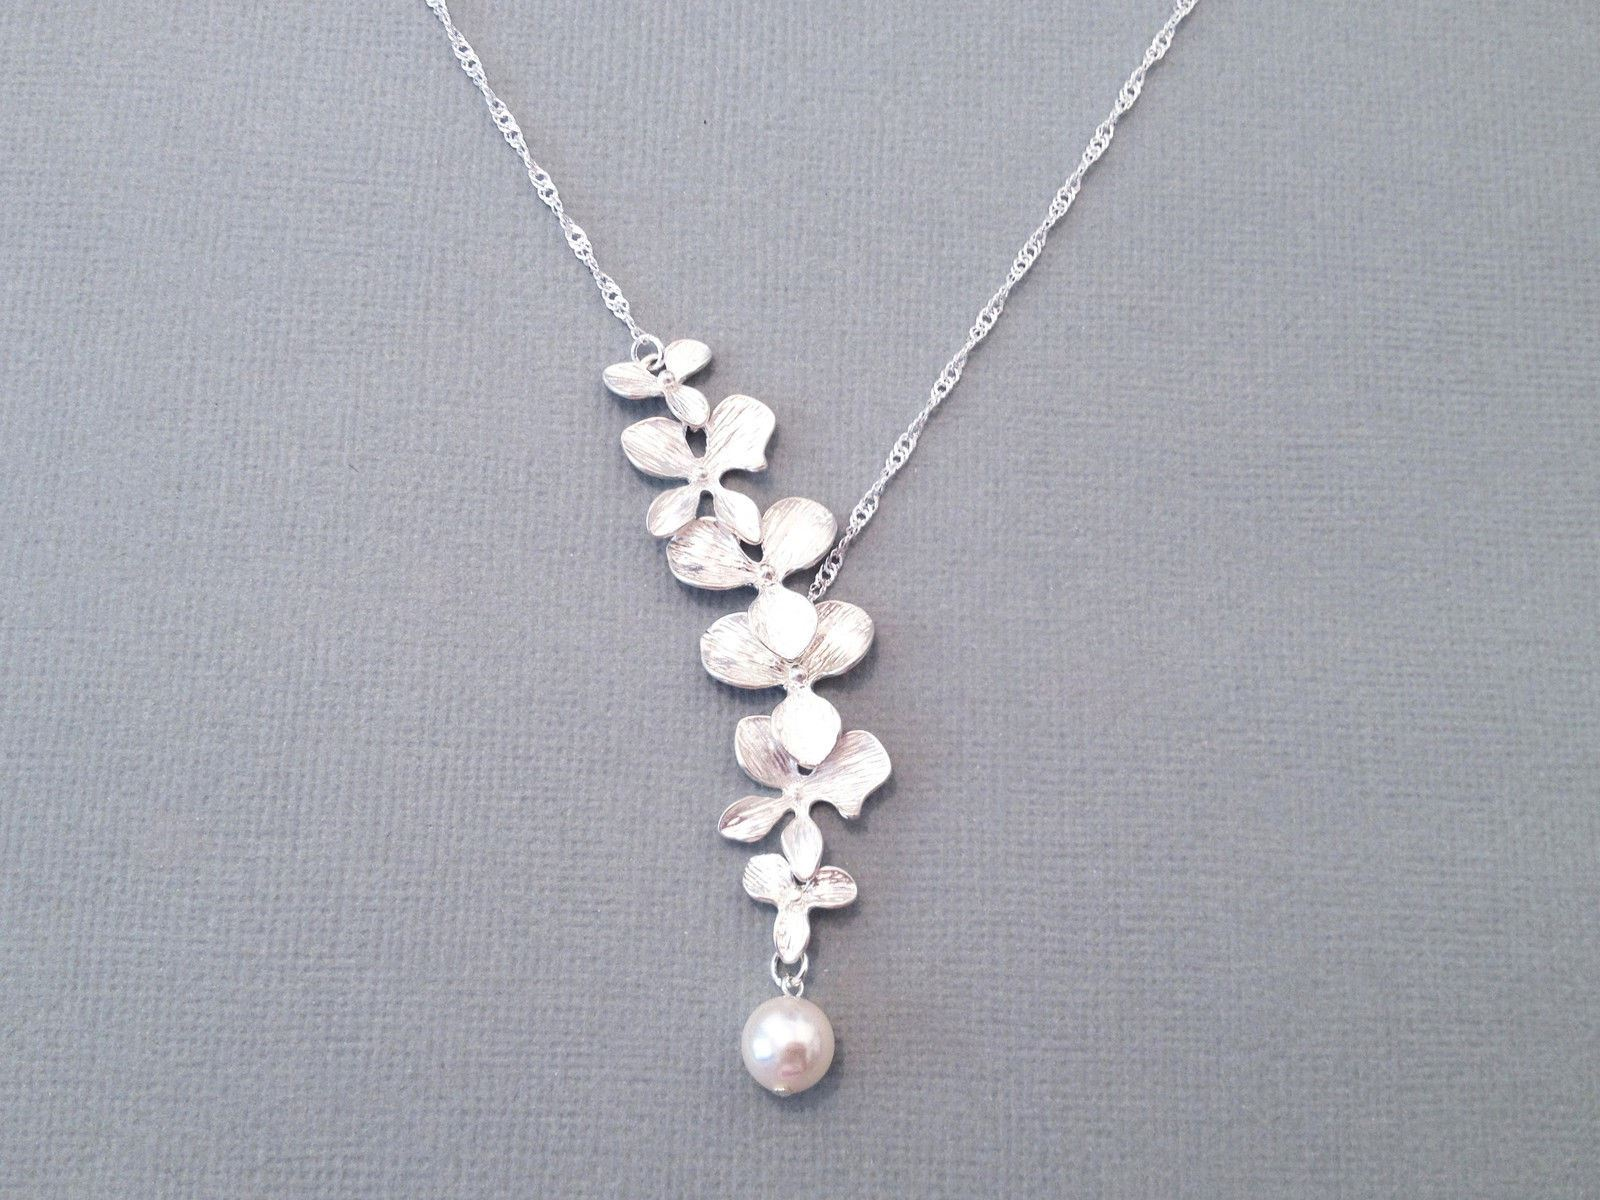 Uk silver plated trailing orchid flower and pearl pendant necklace uk silver plated trailing orchid flower and pearl pendant necklace aloadofball Images